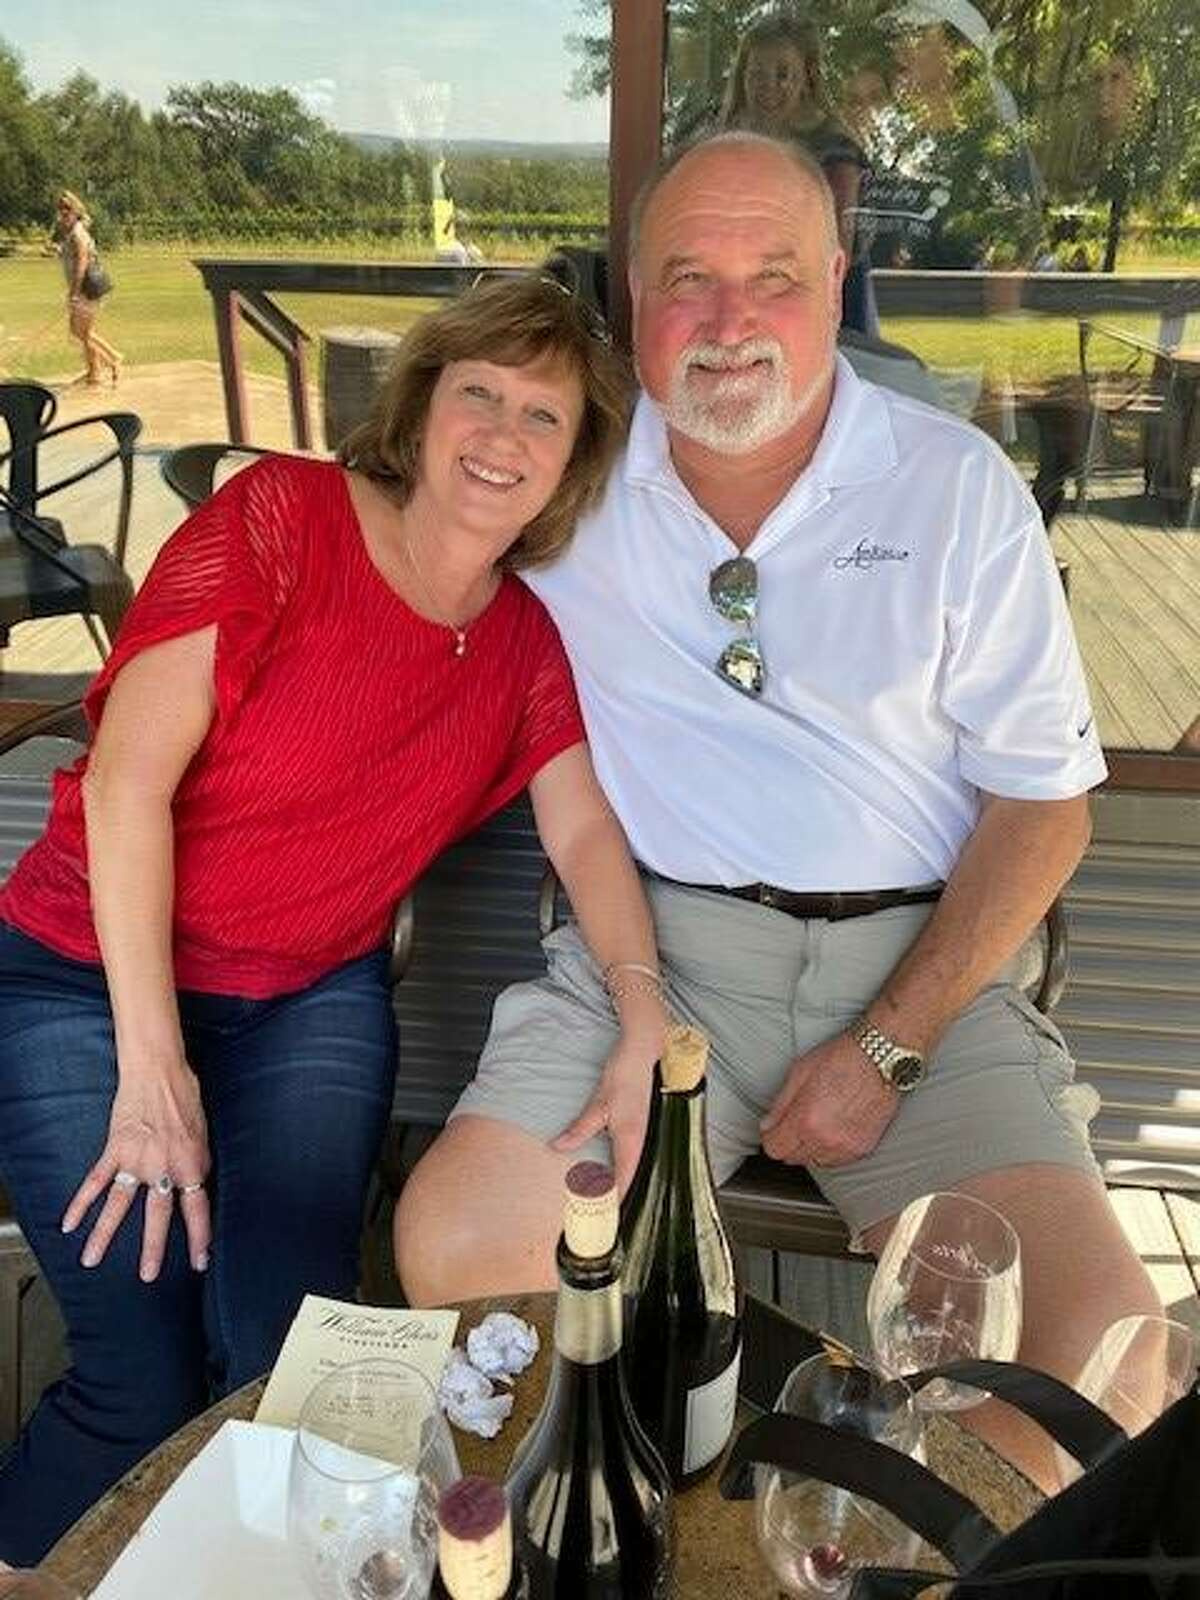 Kathy Lohberg with her husband Vic Lohberg in Fredericksburg following the completion of her radiation treatment.